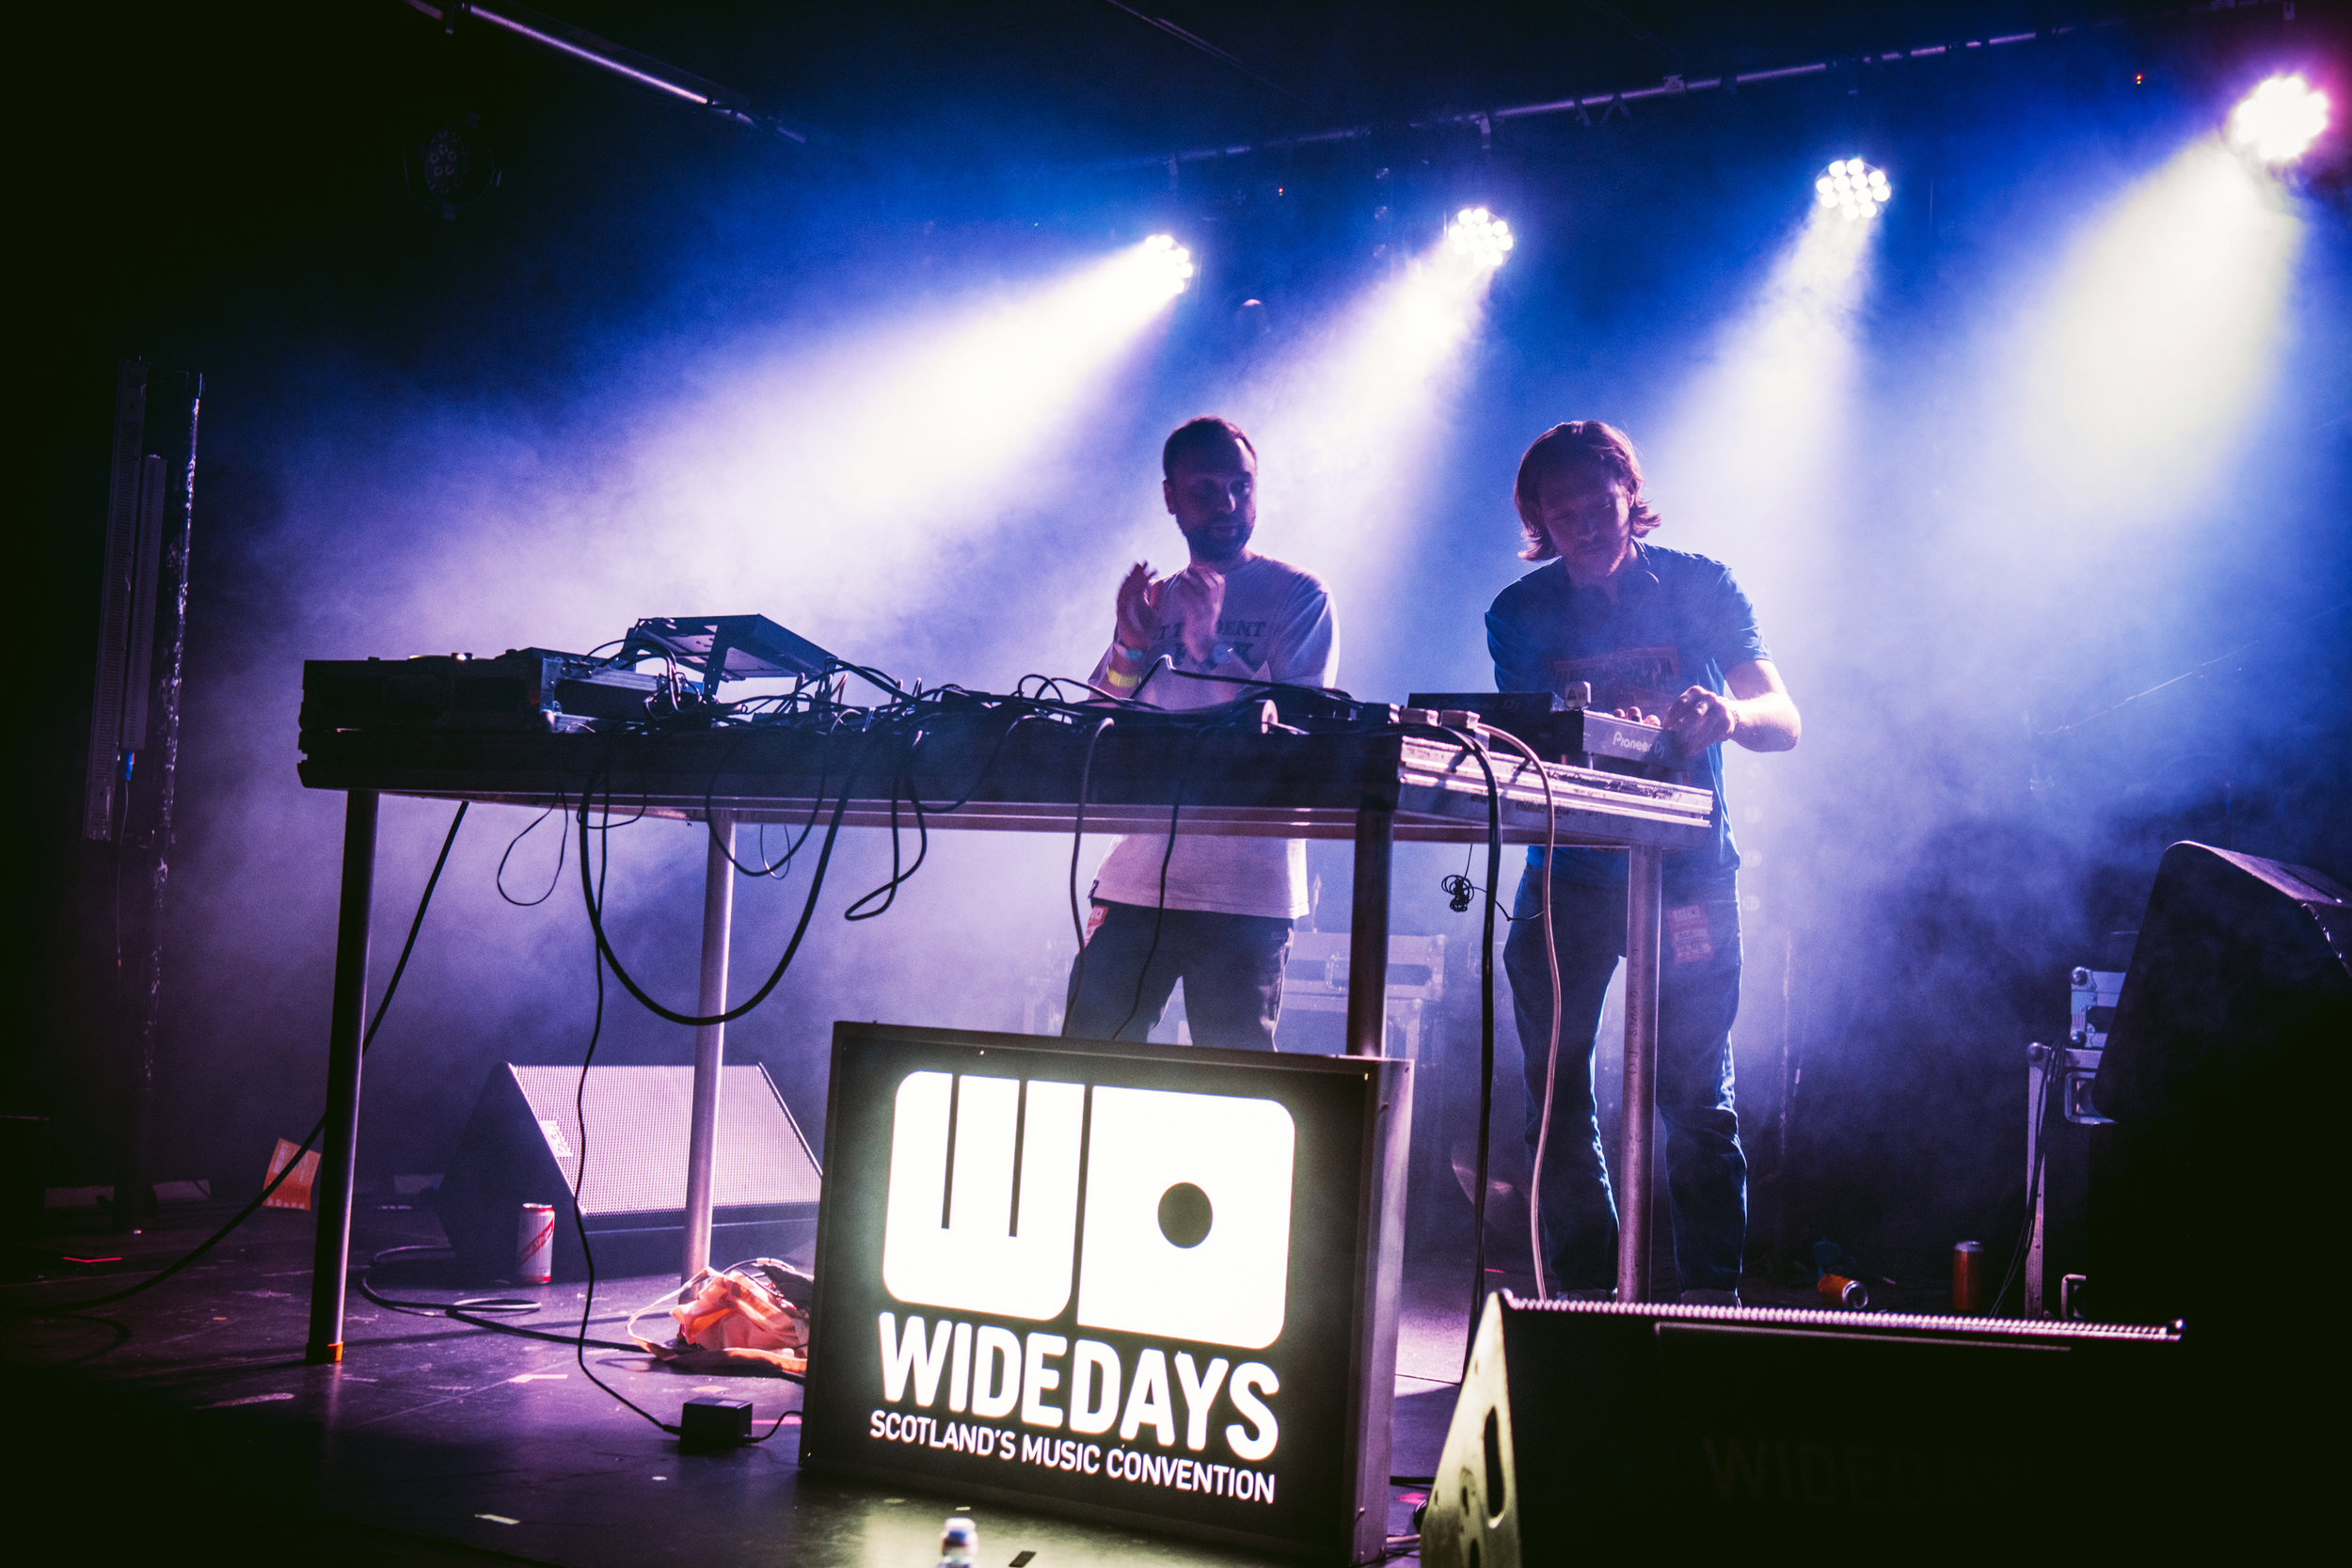 13.04.2019 - Widedays - Main Ingredient - Gaelle Beri-1.jpg